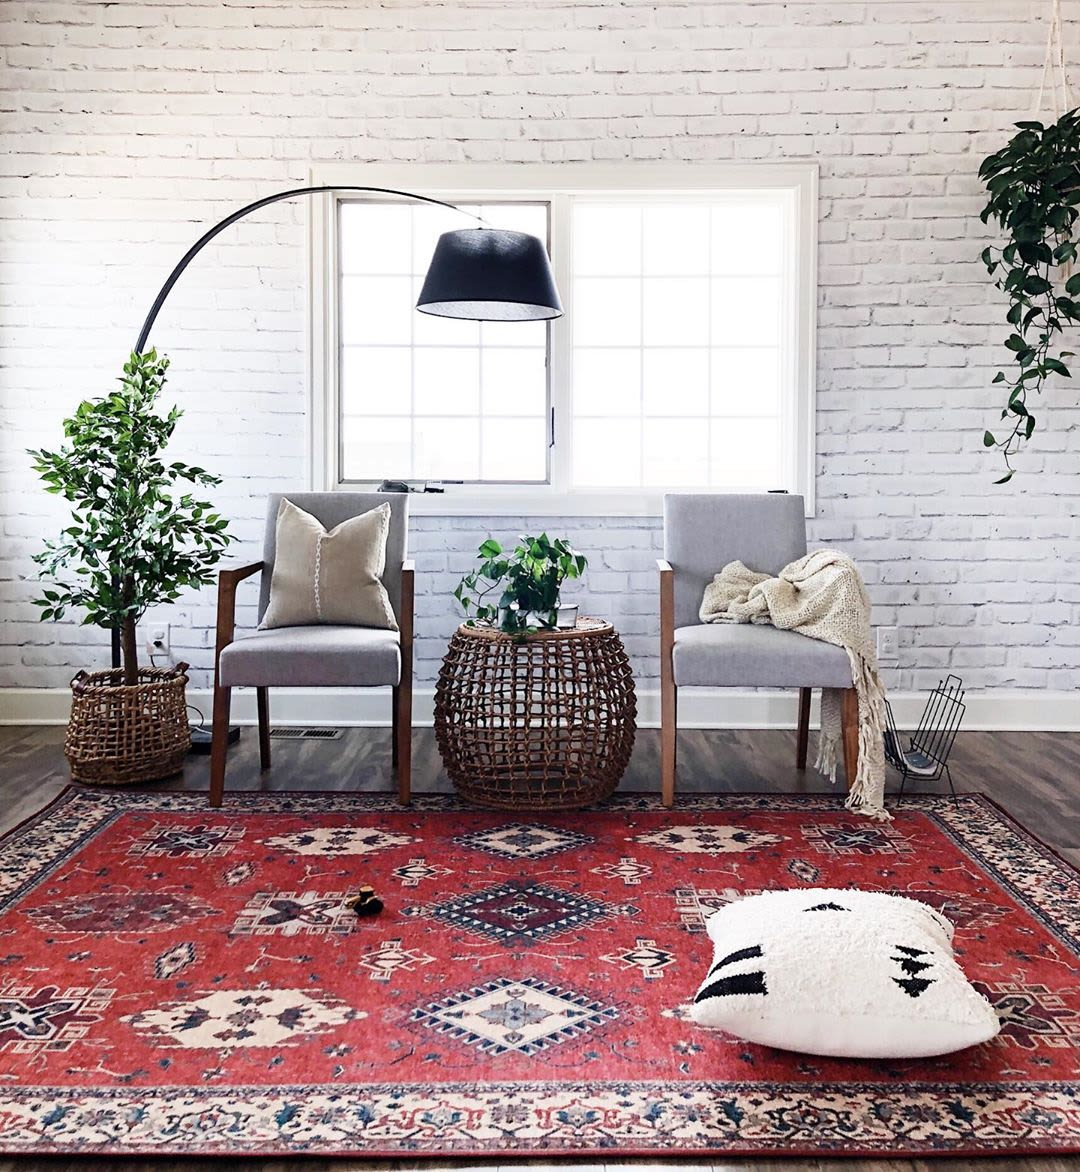 Moroccan inspired red pattern rug